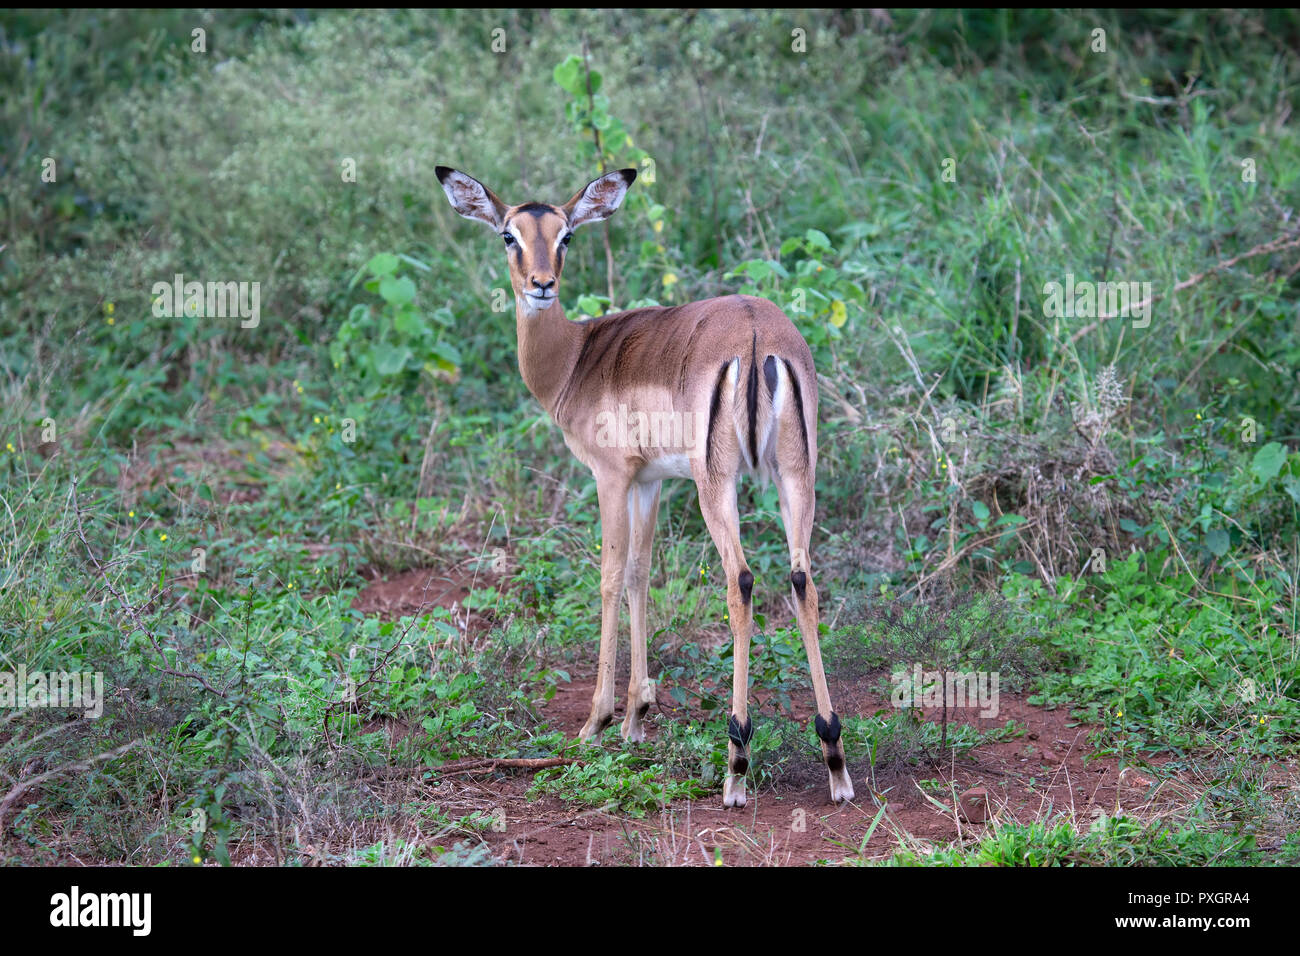 Common Impala Aepyceros melampus  looking over its shoulder in wild savanna in South Africa - Stock Image